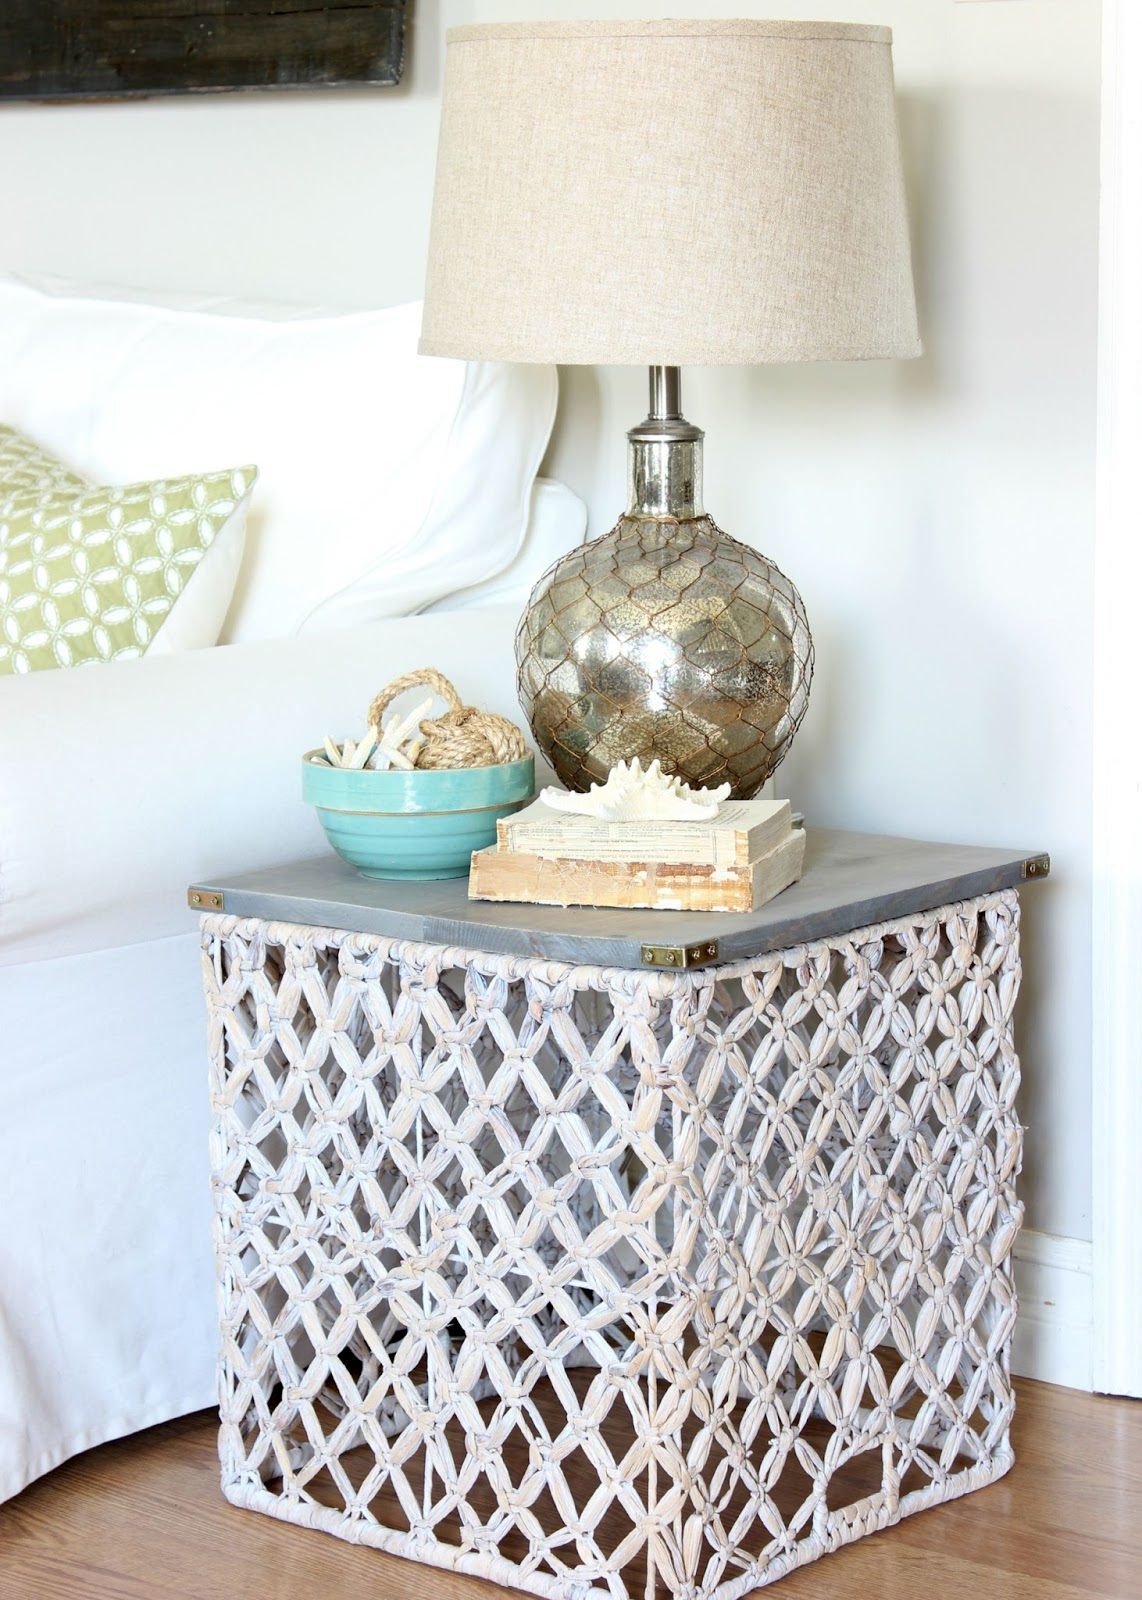 target summer basket becomes chic side table hymns and verses endtable small accent really needed for beside the sofa like sit there night read lamp coffee gold legs dining room